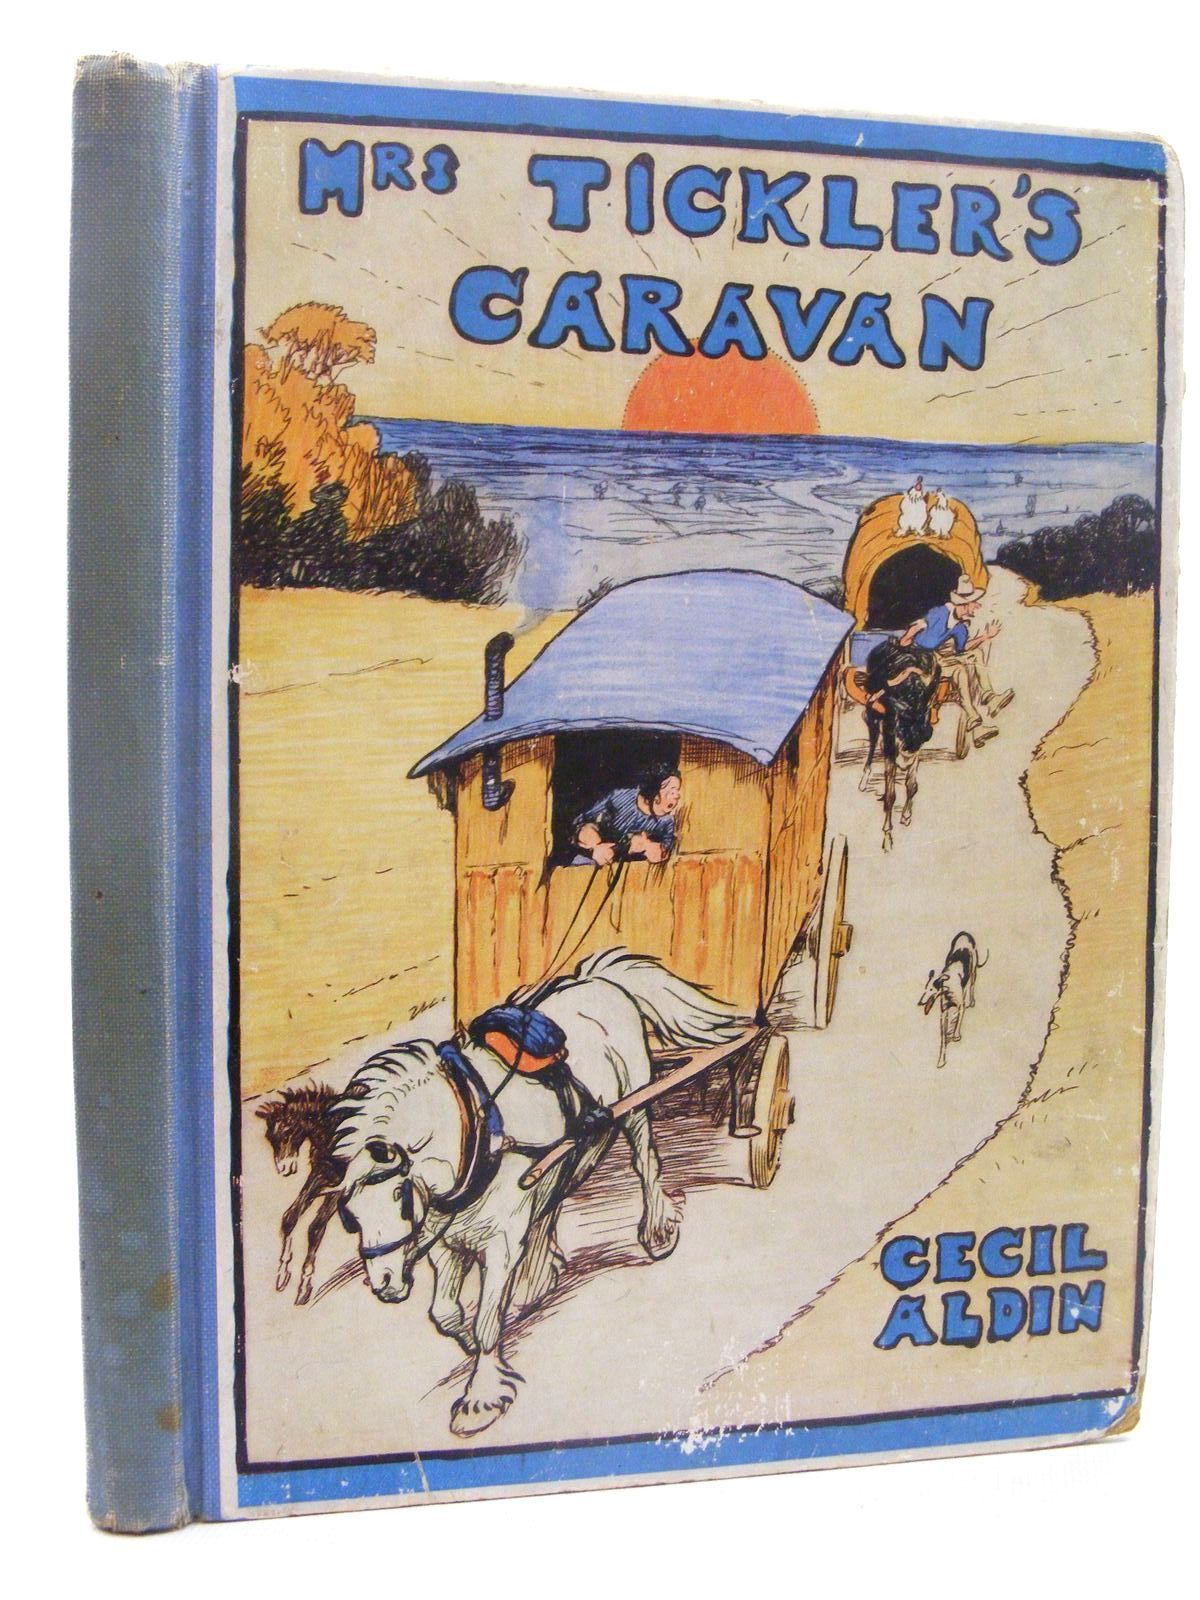 Photo of MRS. TICKLER'S CARAVAN A STORY FOR CHILDREN written by Aldin, Cecil illustrated by Aldin, Cecil published by Eyre & Spottiswoode (STOCK CODE: 2124912)  for sale by Stella & Rose's Books